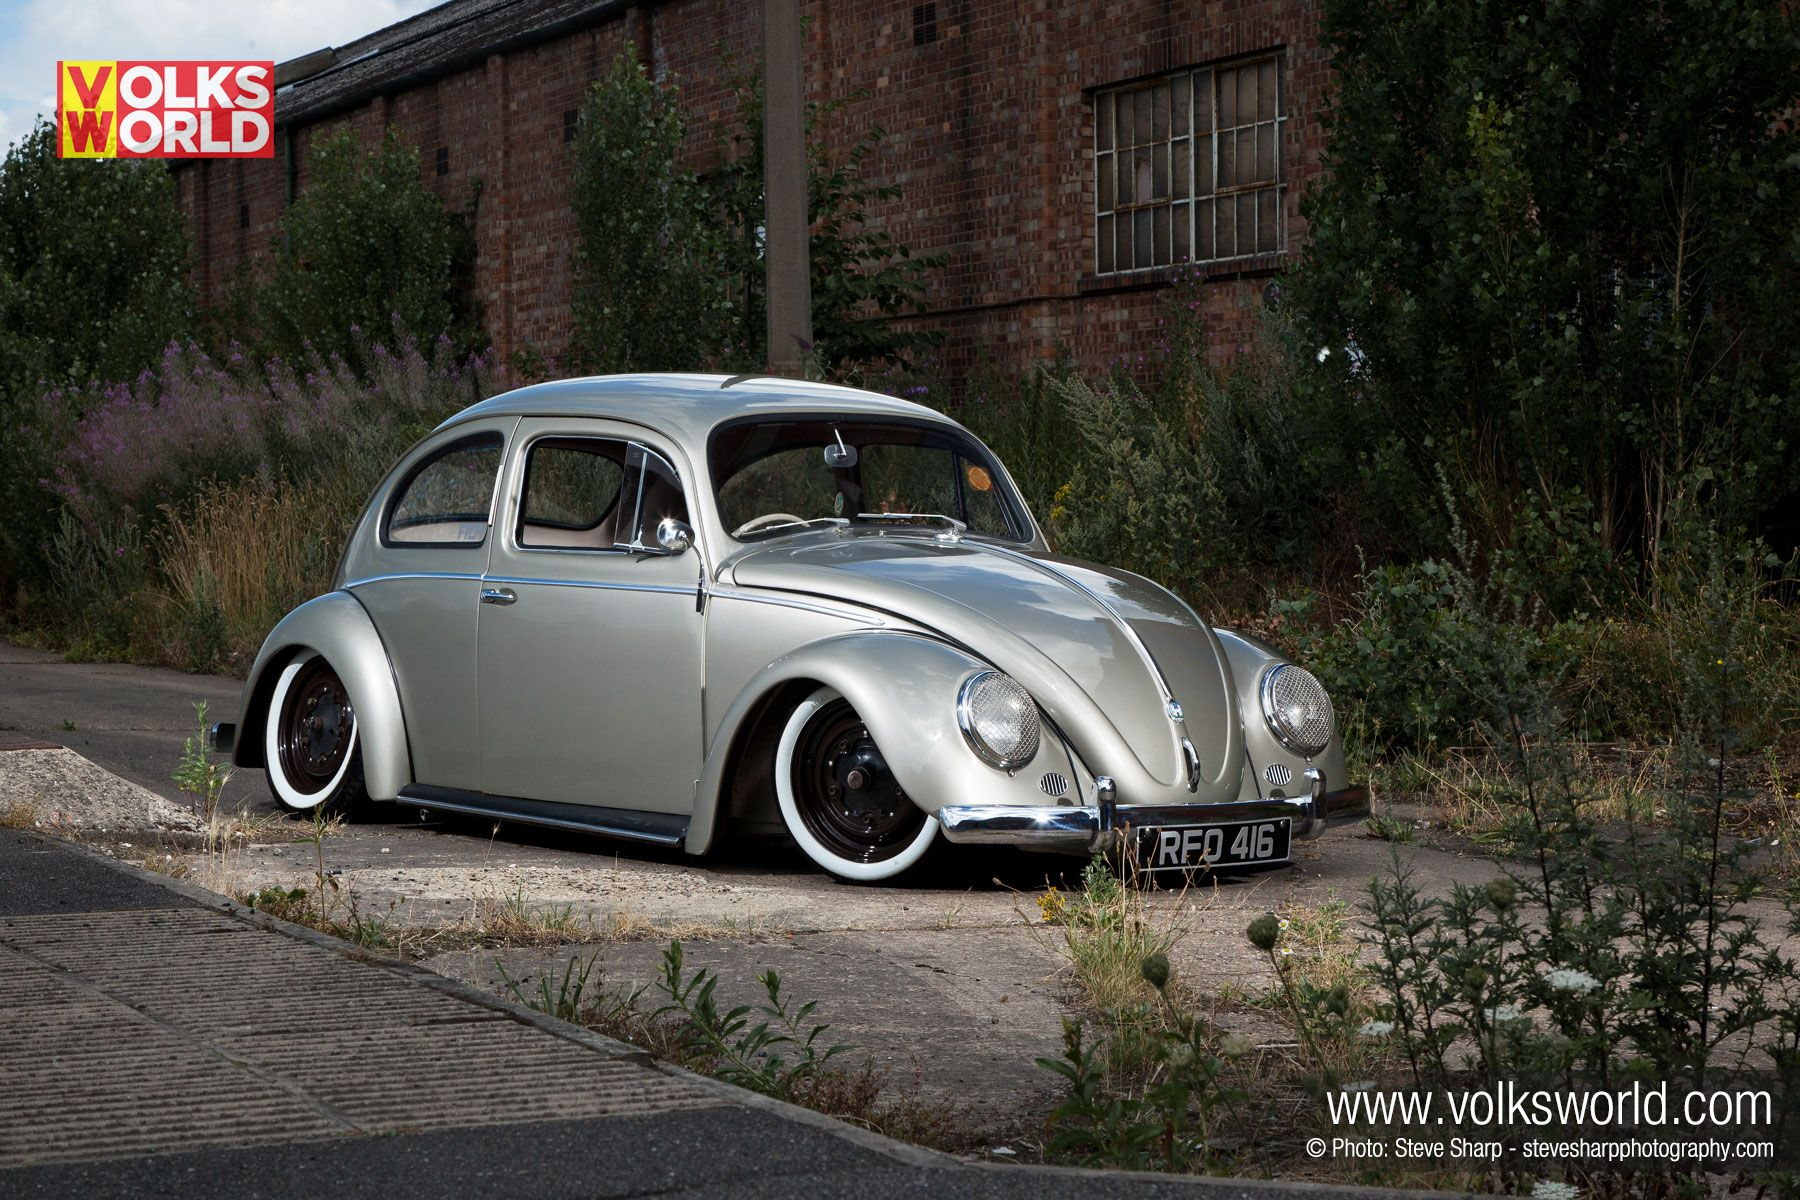 1959 Volkswagen Beetle Wallpaper This Weeks Desktop Wallpaper Comes